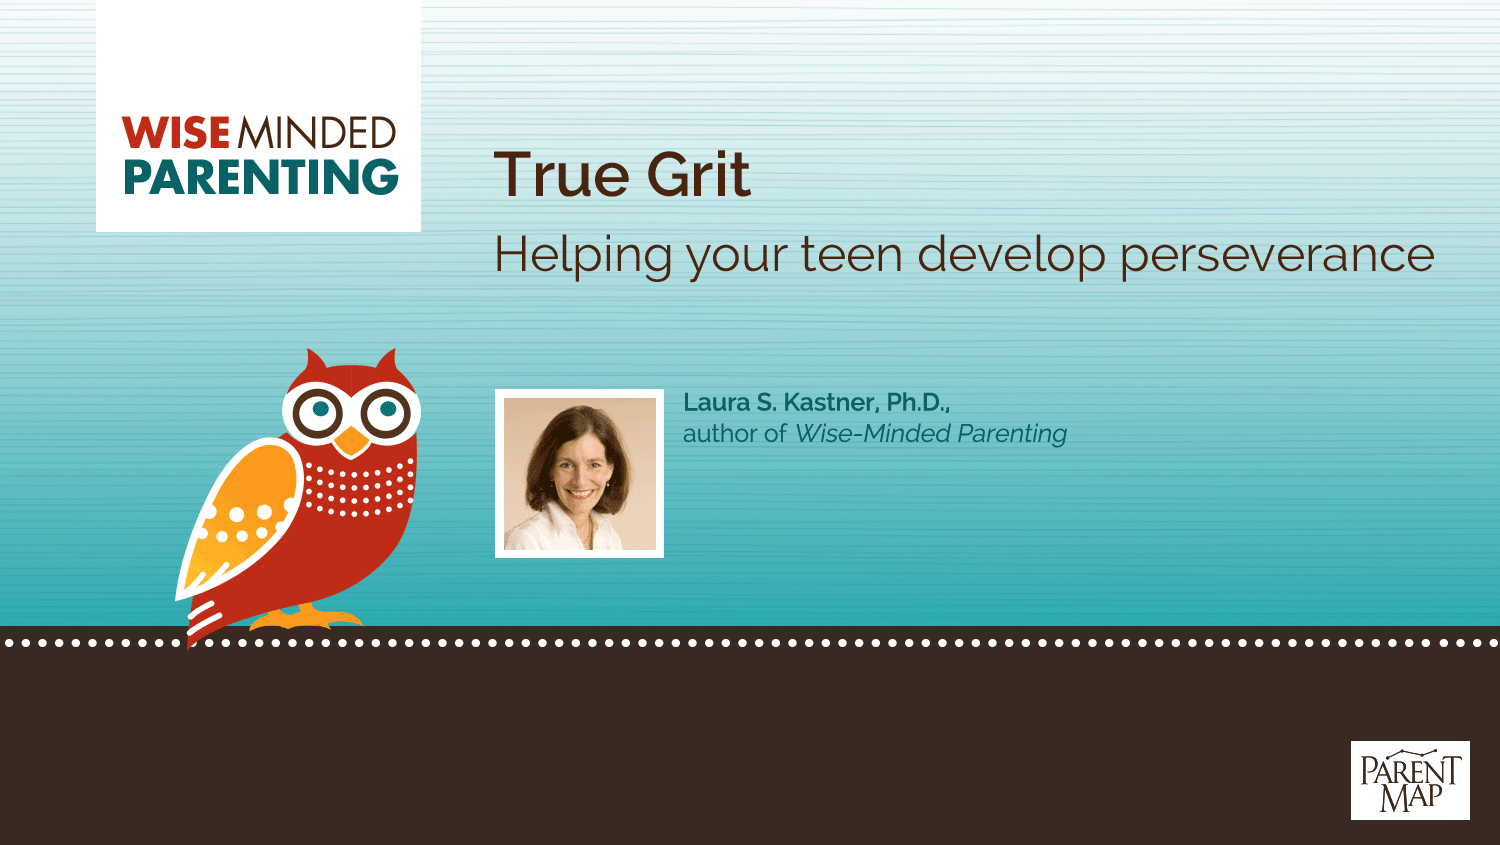 True Grit: Helping your teen develop perseverance